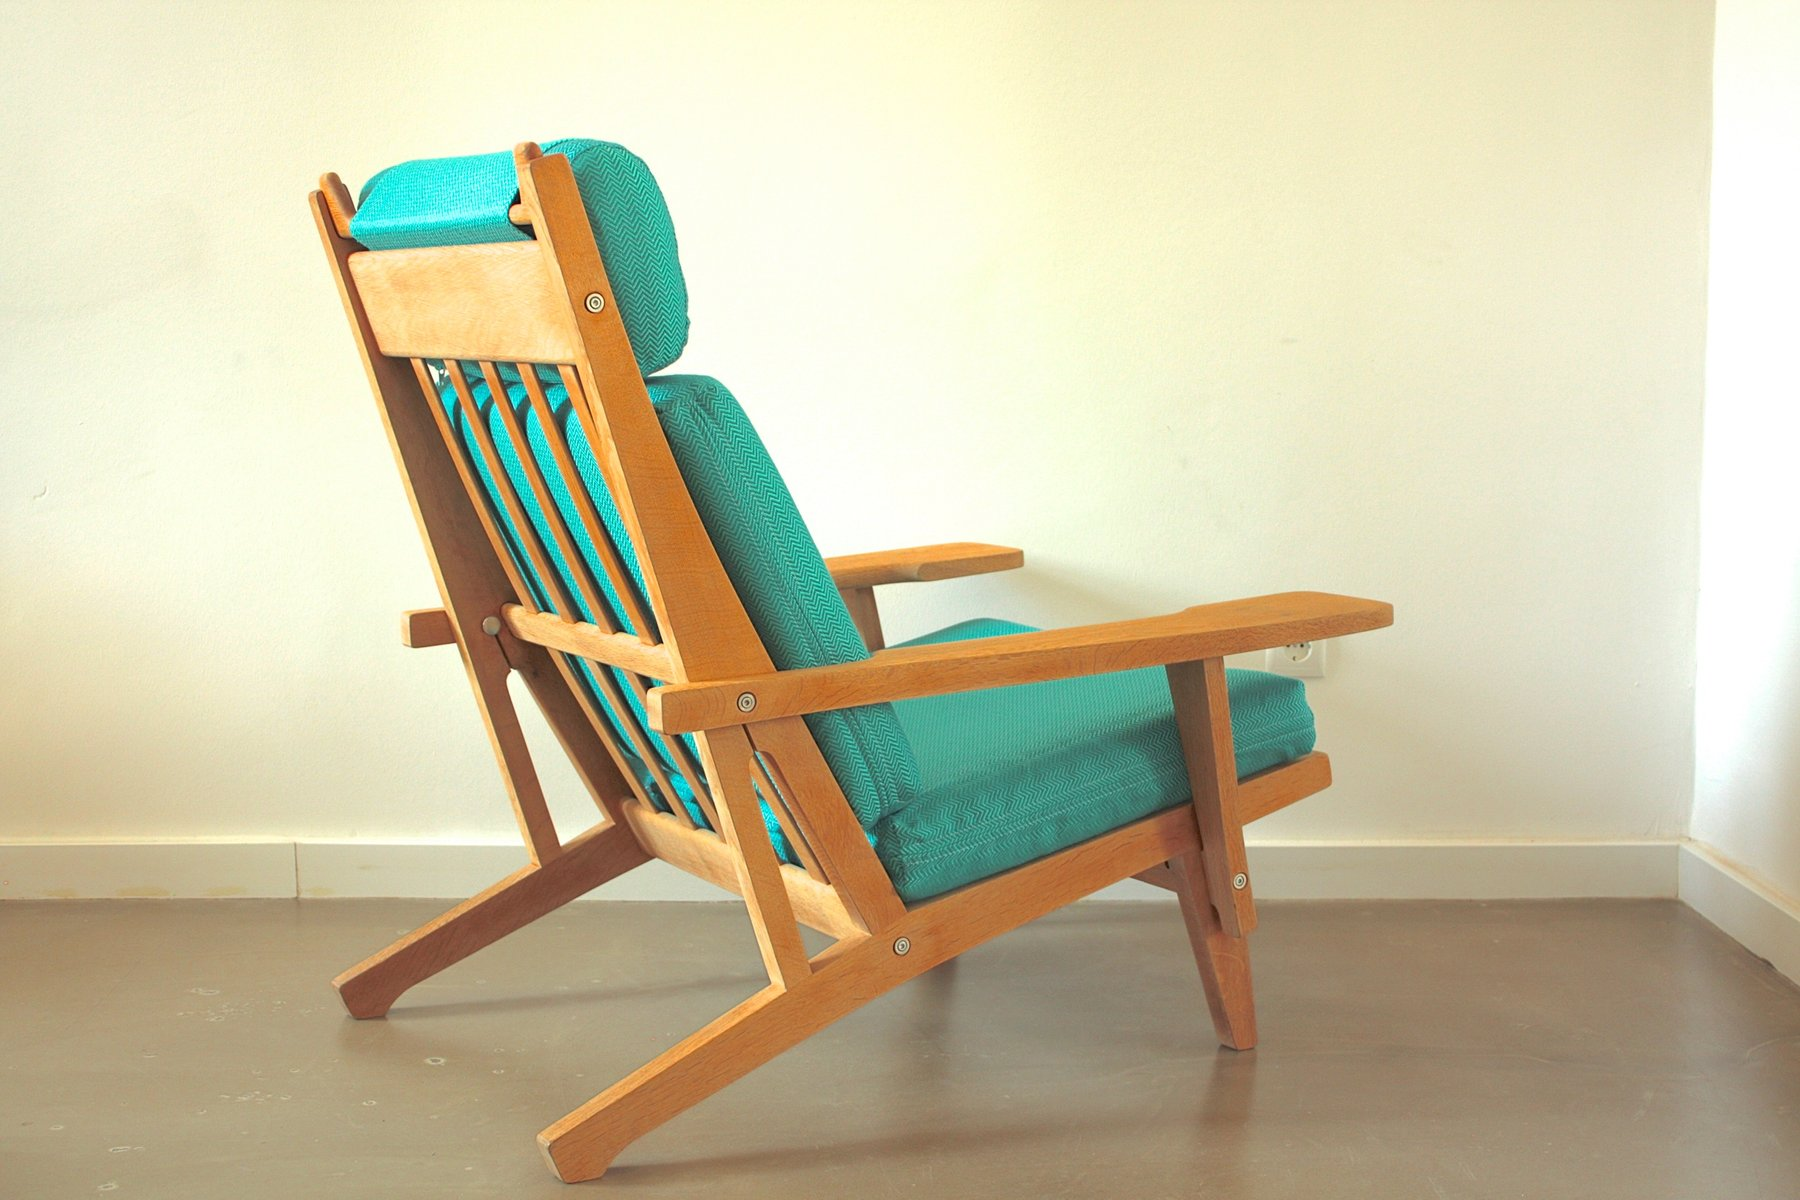 Vintage GE 375 Easy Chair by Hans J Wegner for Getama for sale at